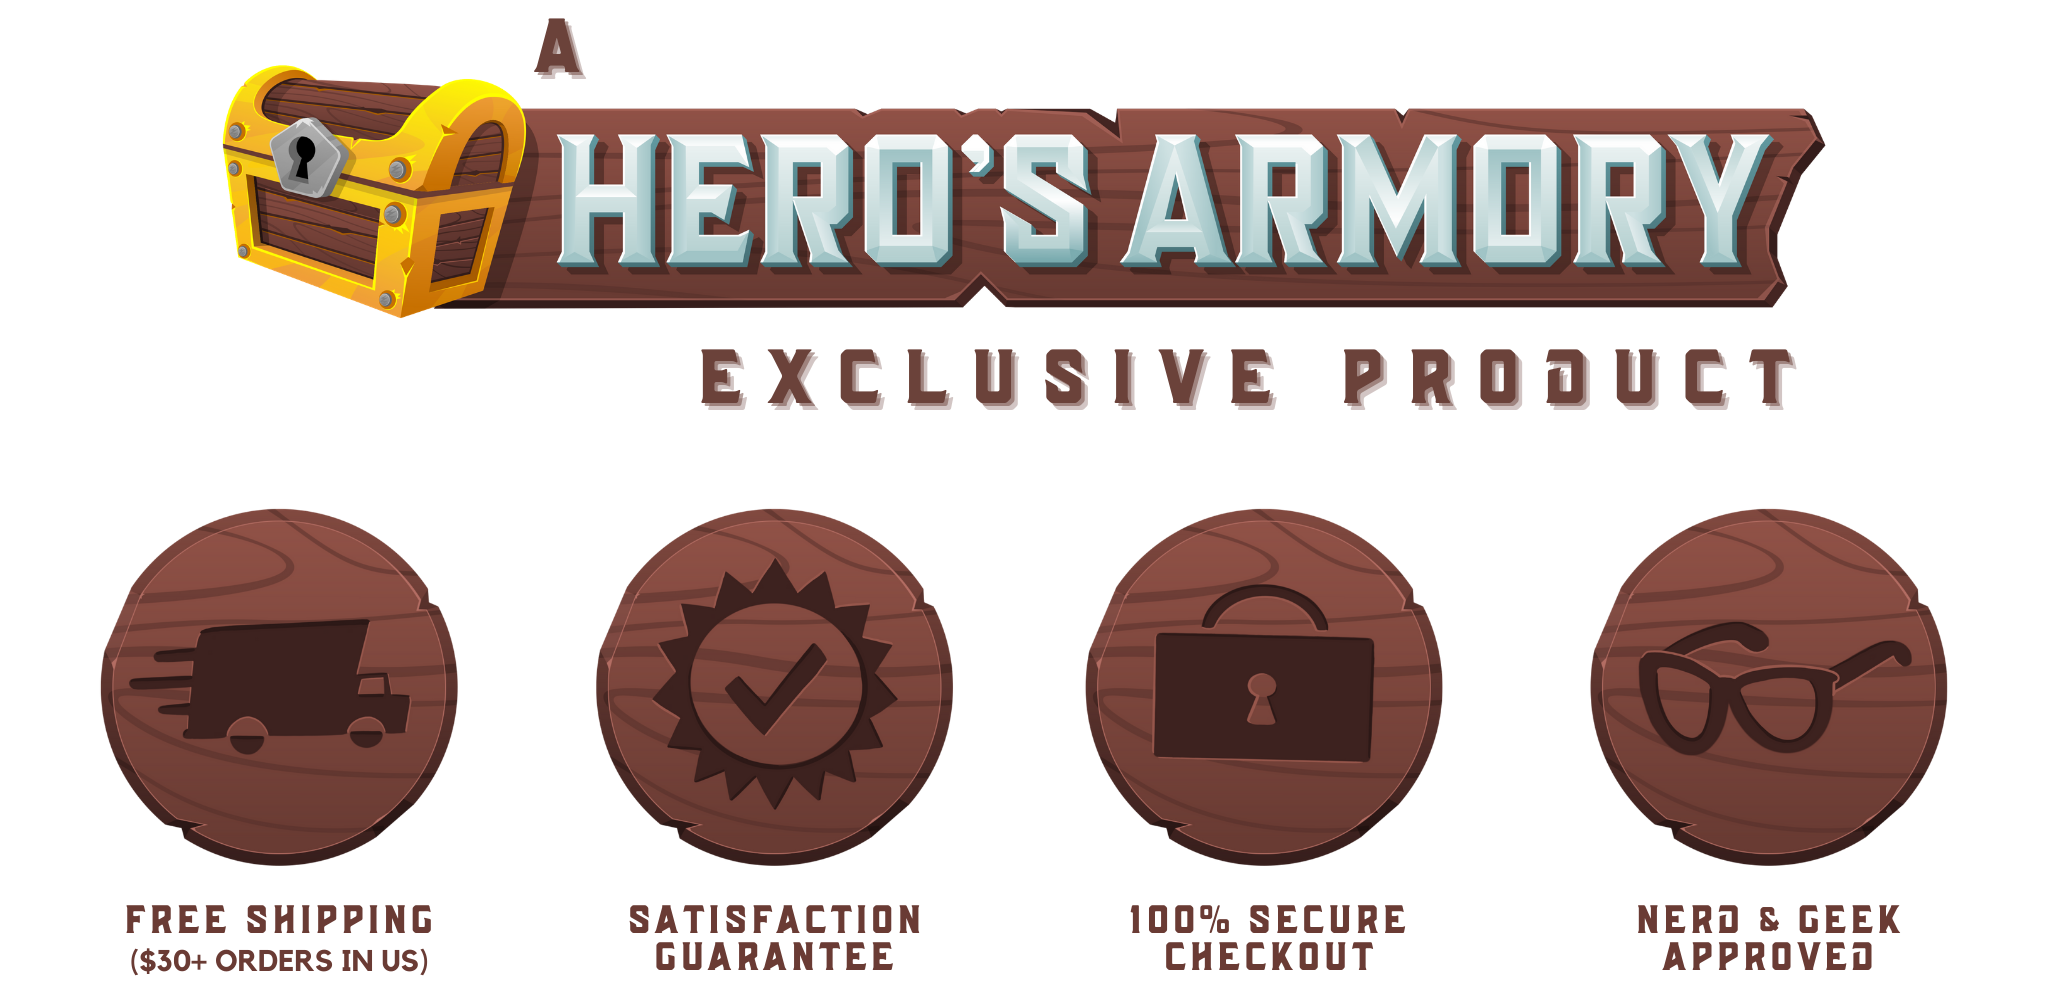 A Hero's Armory Exclusive Product